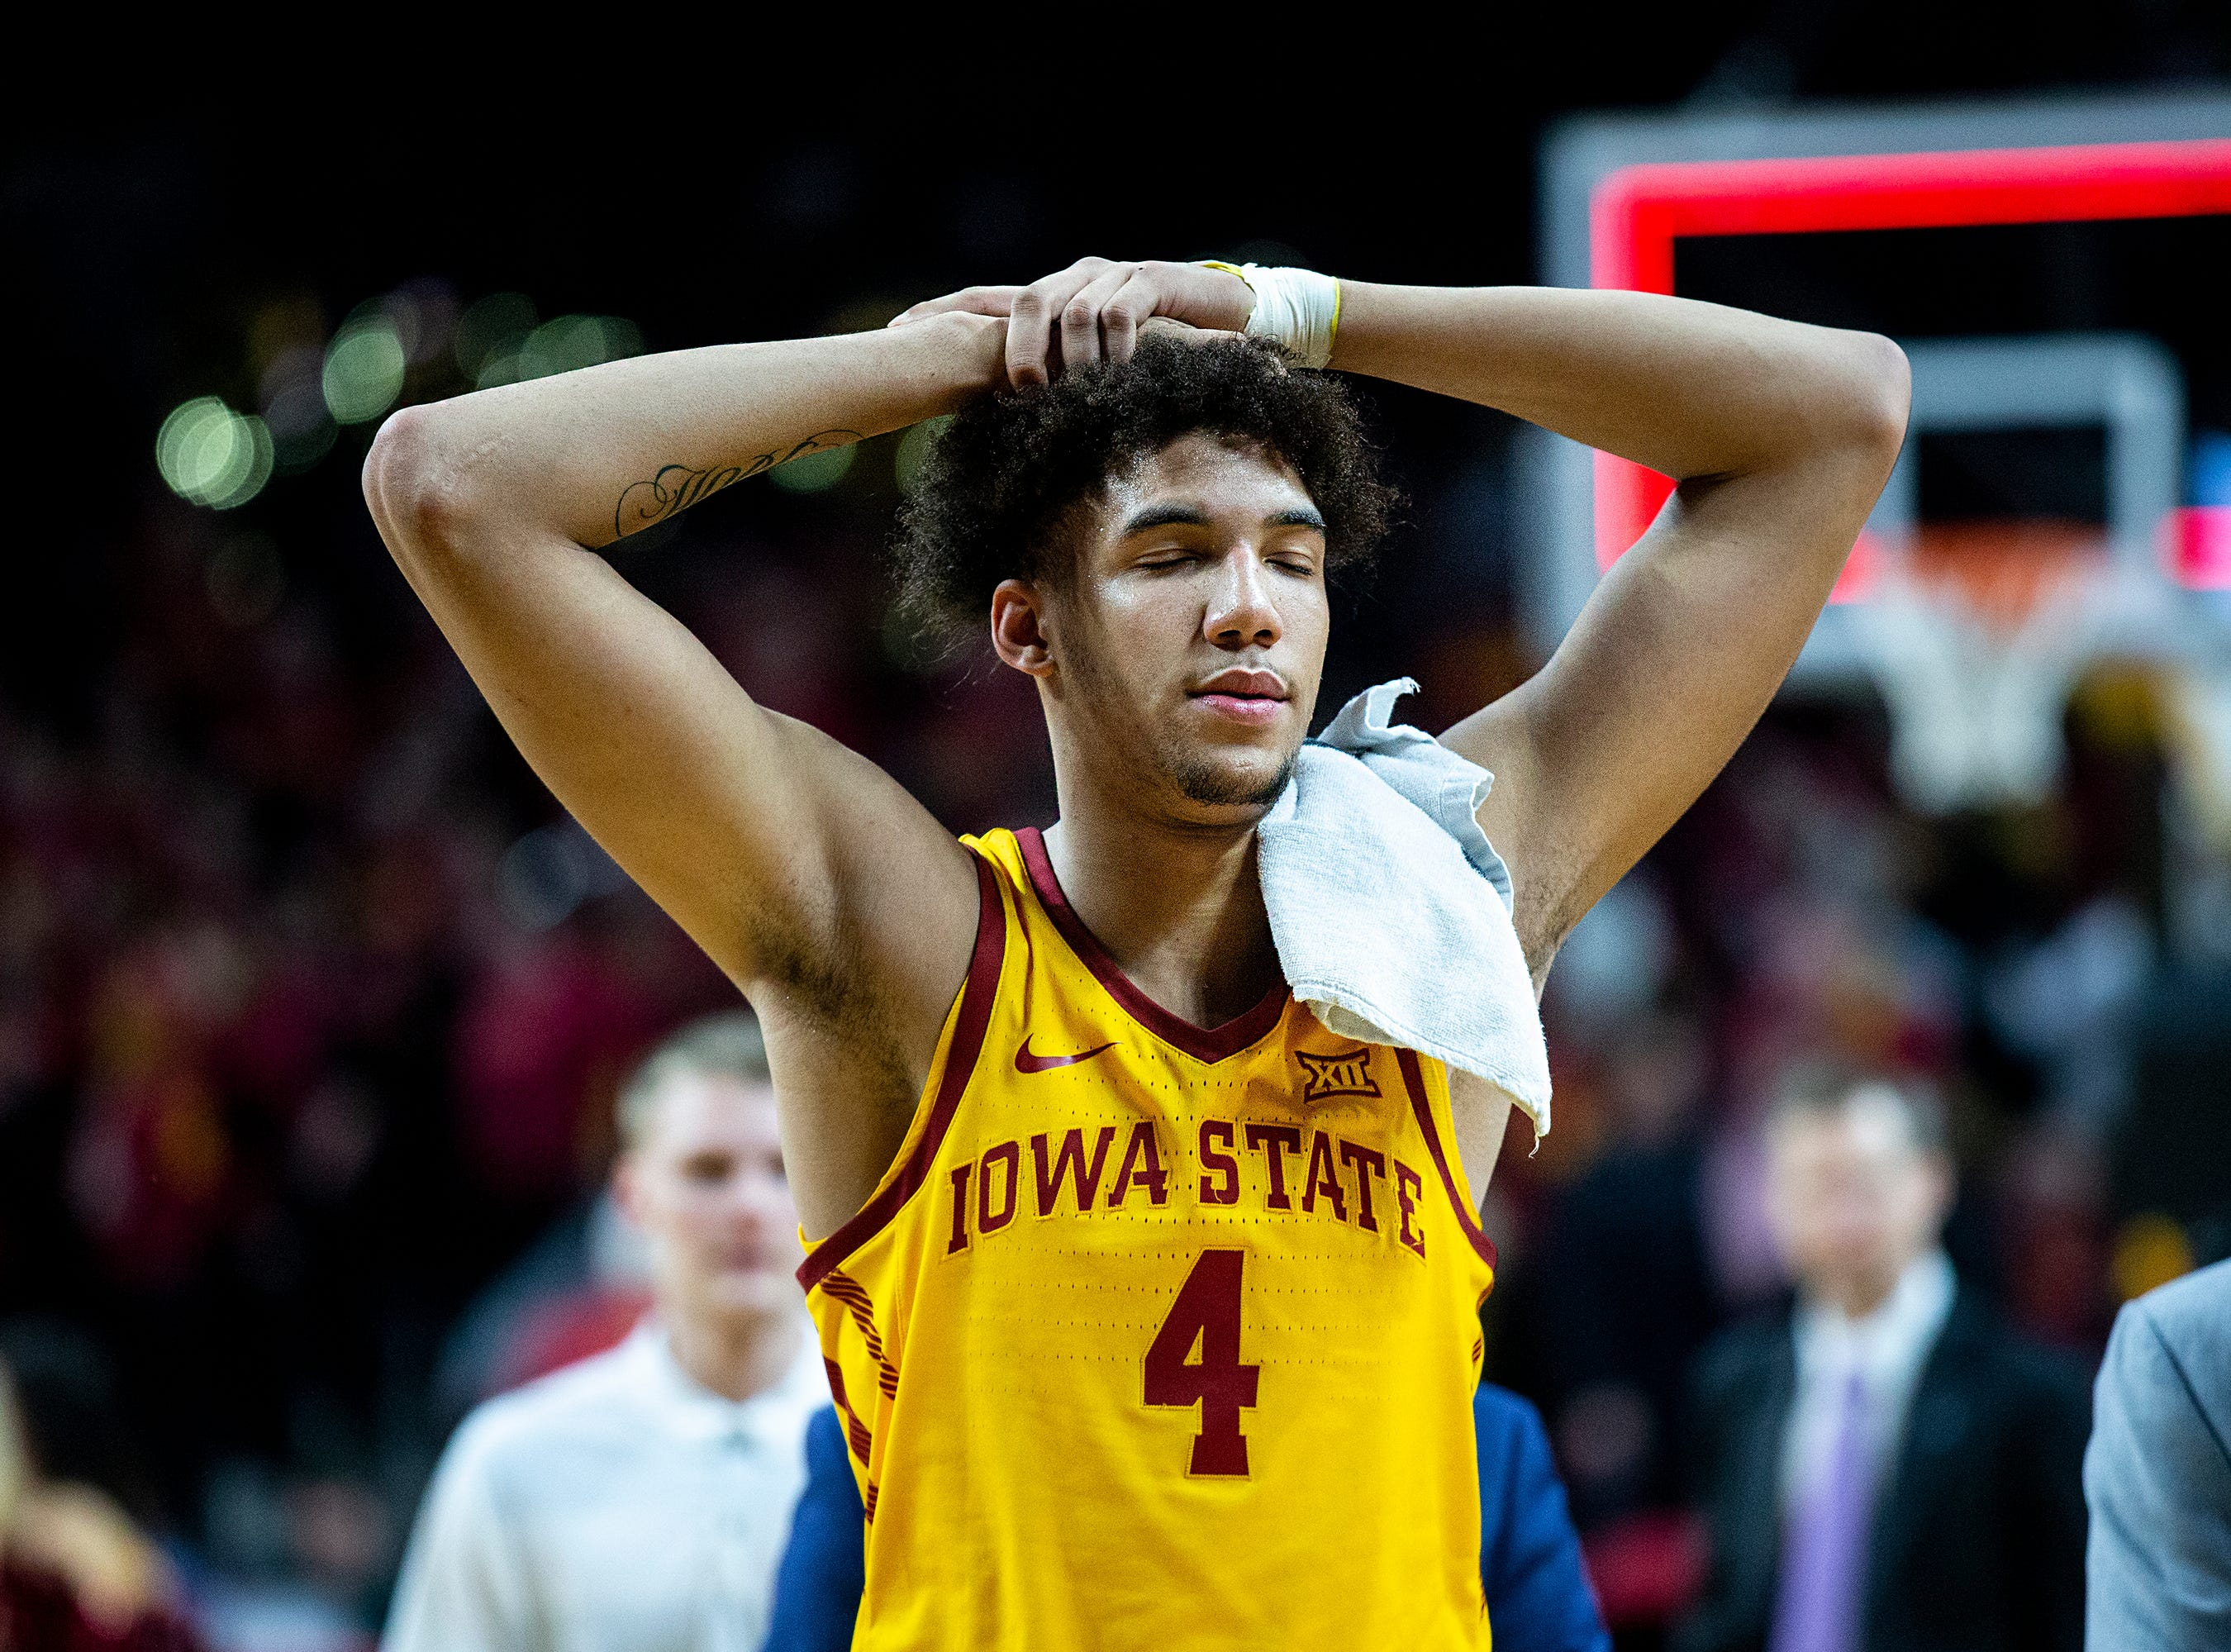 Iowa State's George Conditt leaves the court after the Cyclones loss to Kansas State on Saturday, Jan. 12, 2019, in Hilton Coliseum. The Cyclones lost to KSU by one point, 58-57.